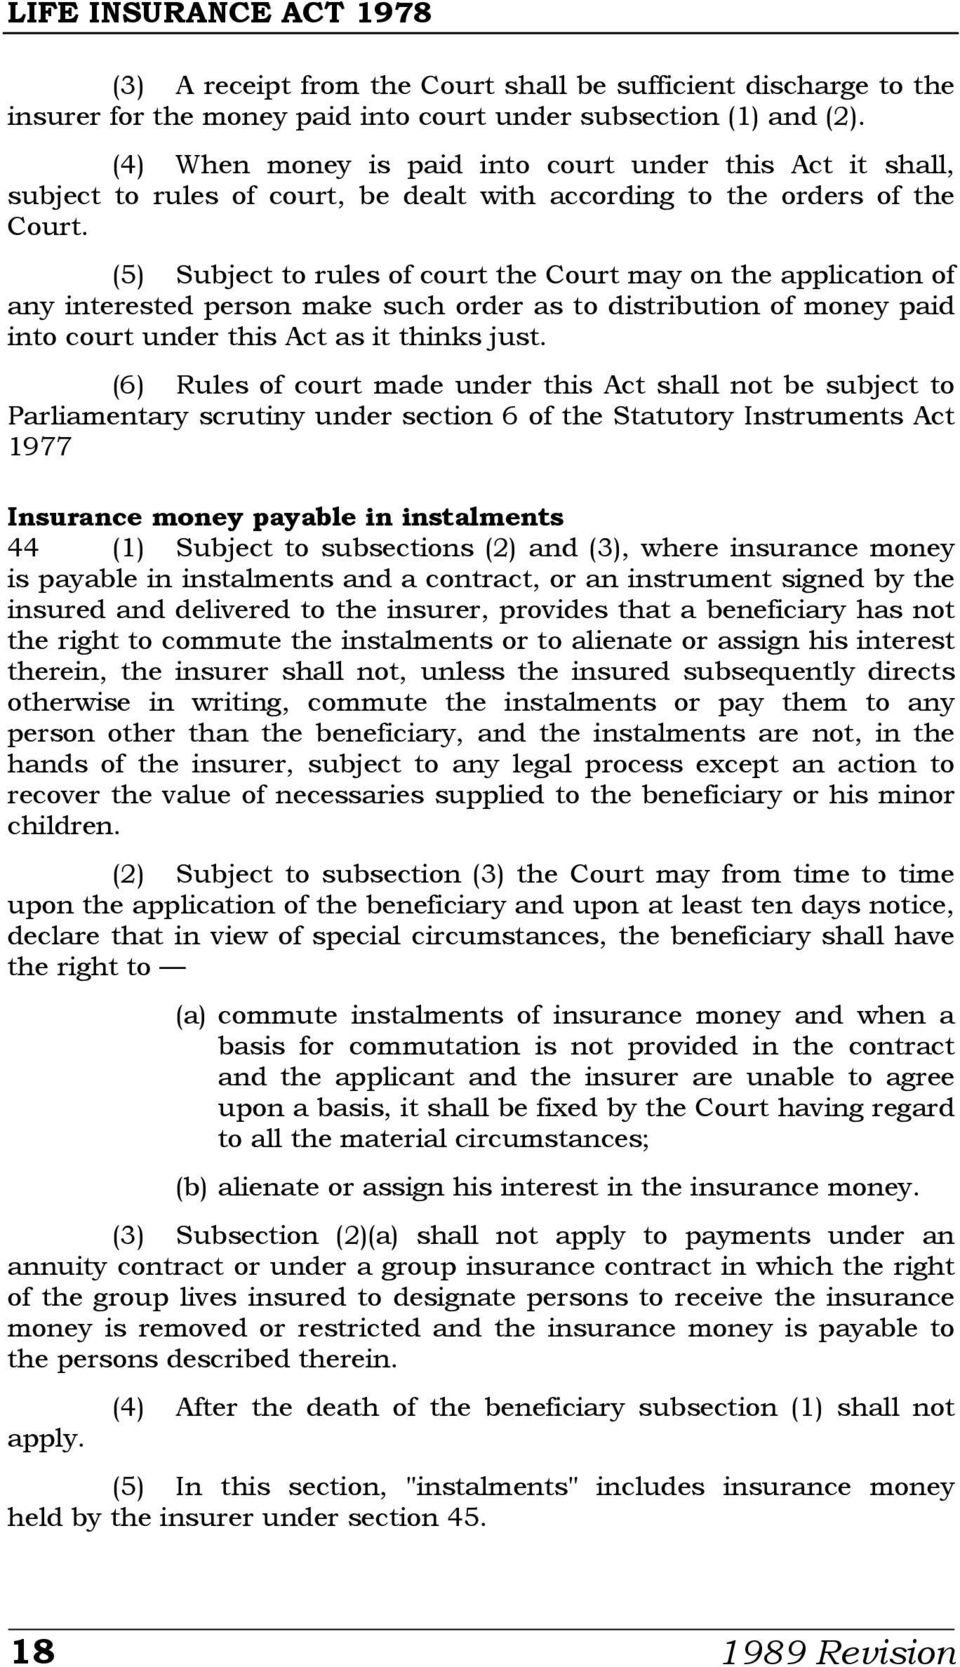 (5) Subject to rules of court the Court may on the application of any interested person make such order as to distribution of money paid into court under this Act as it thinks just.